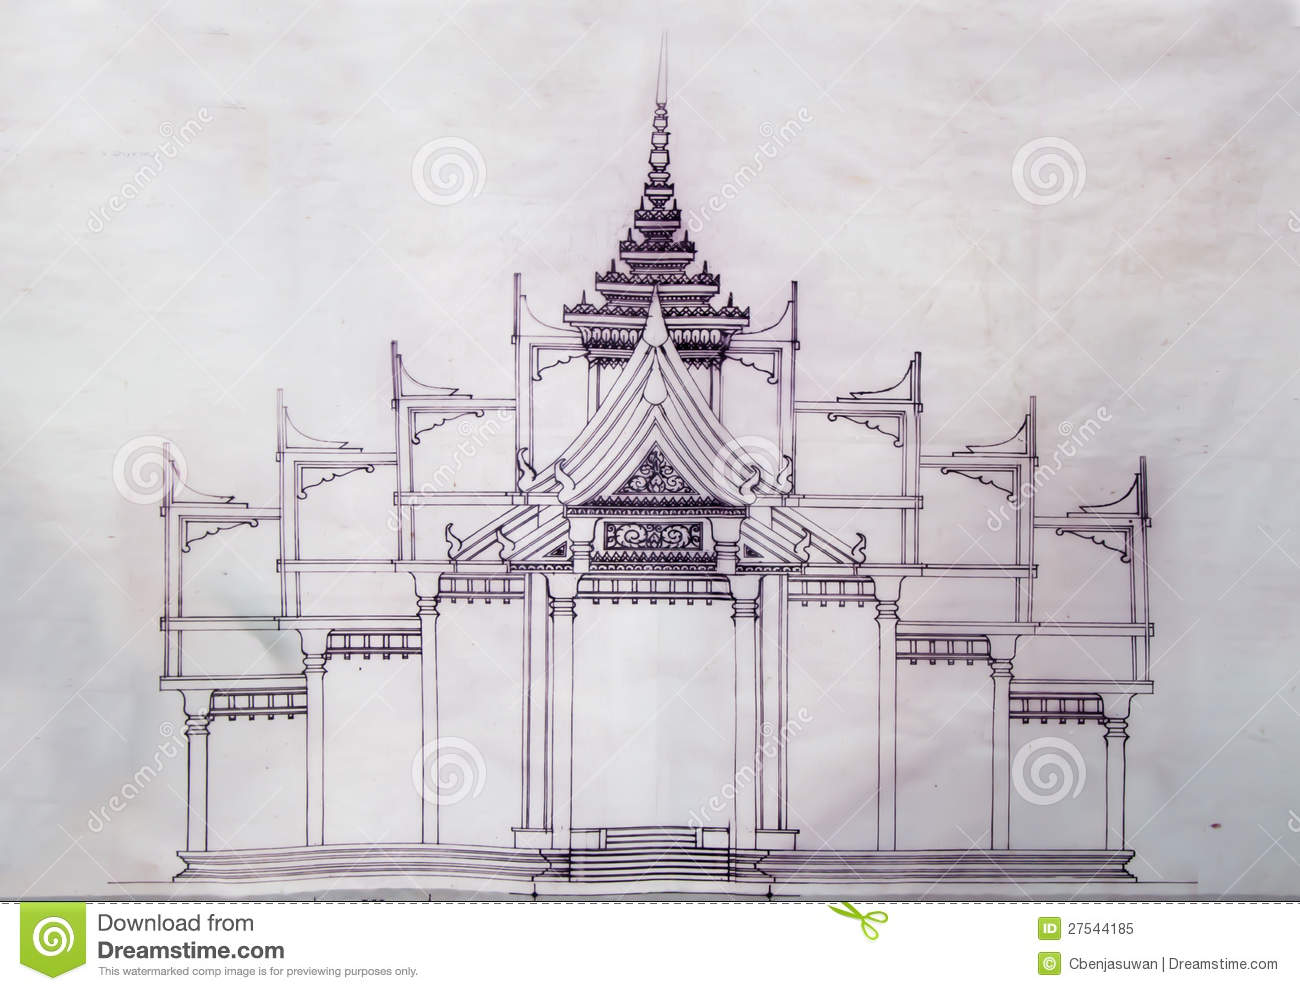 Blueprint church of temple stock image image of style 27544185 blueprint church of temple malvernweather Image collections